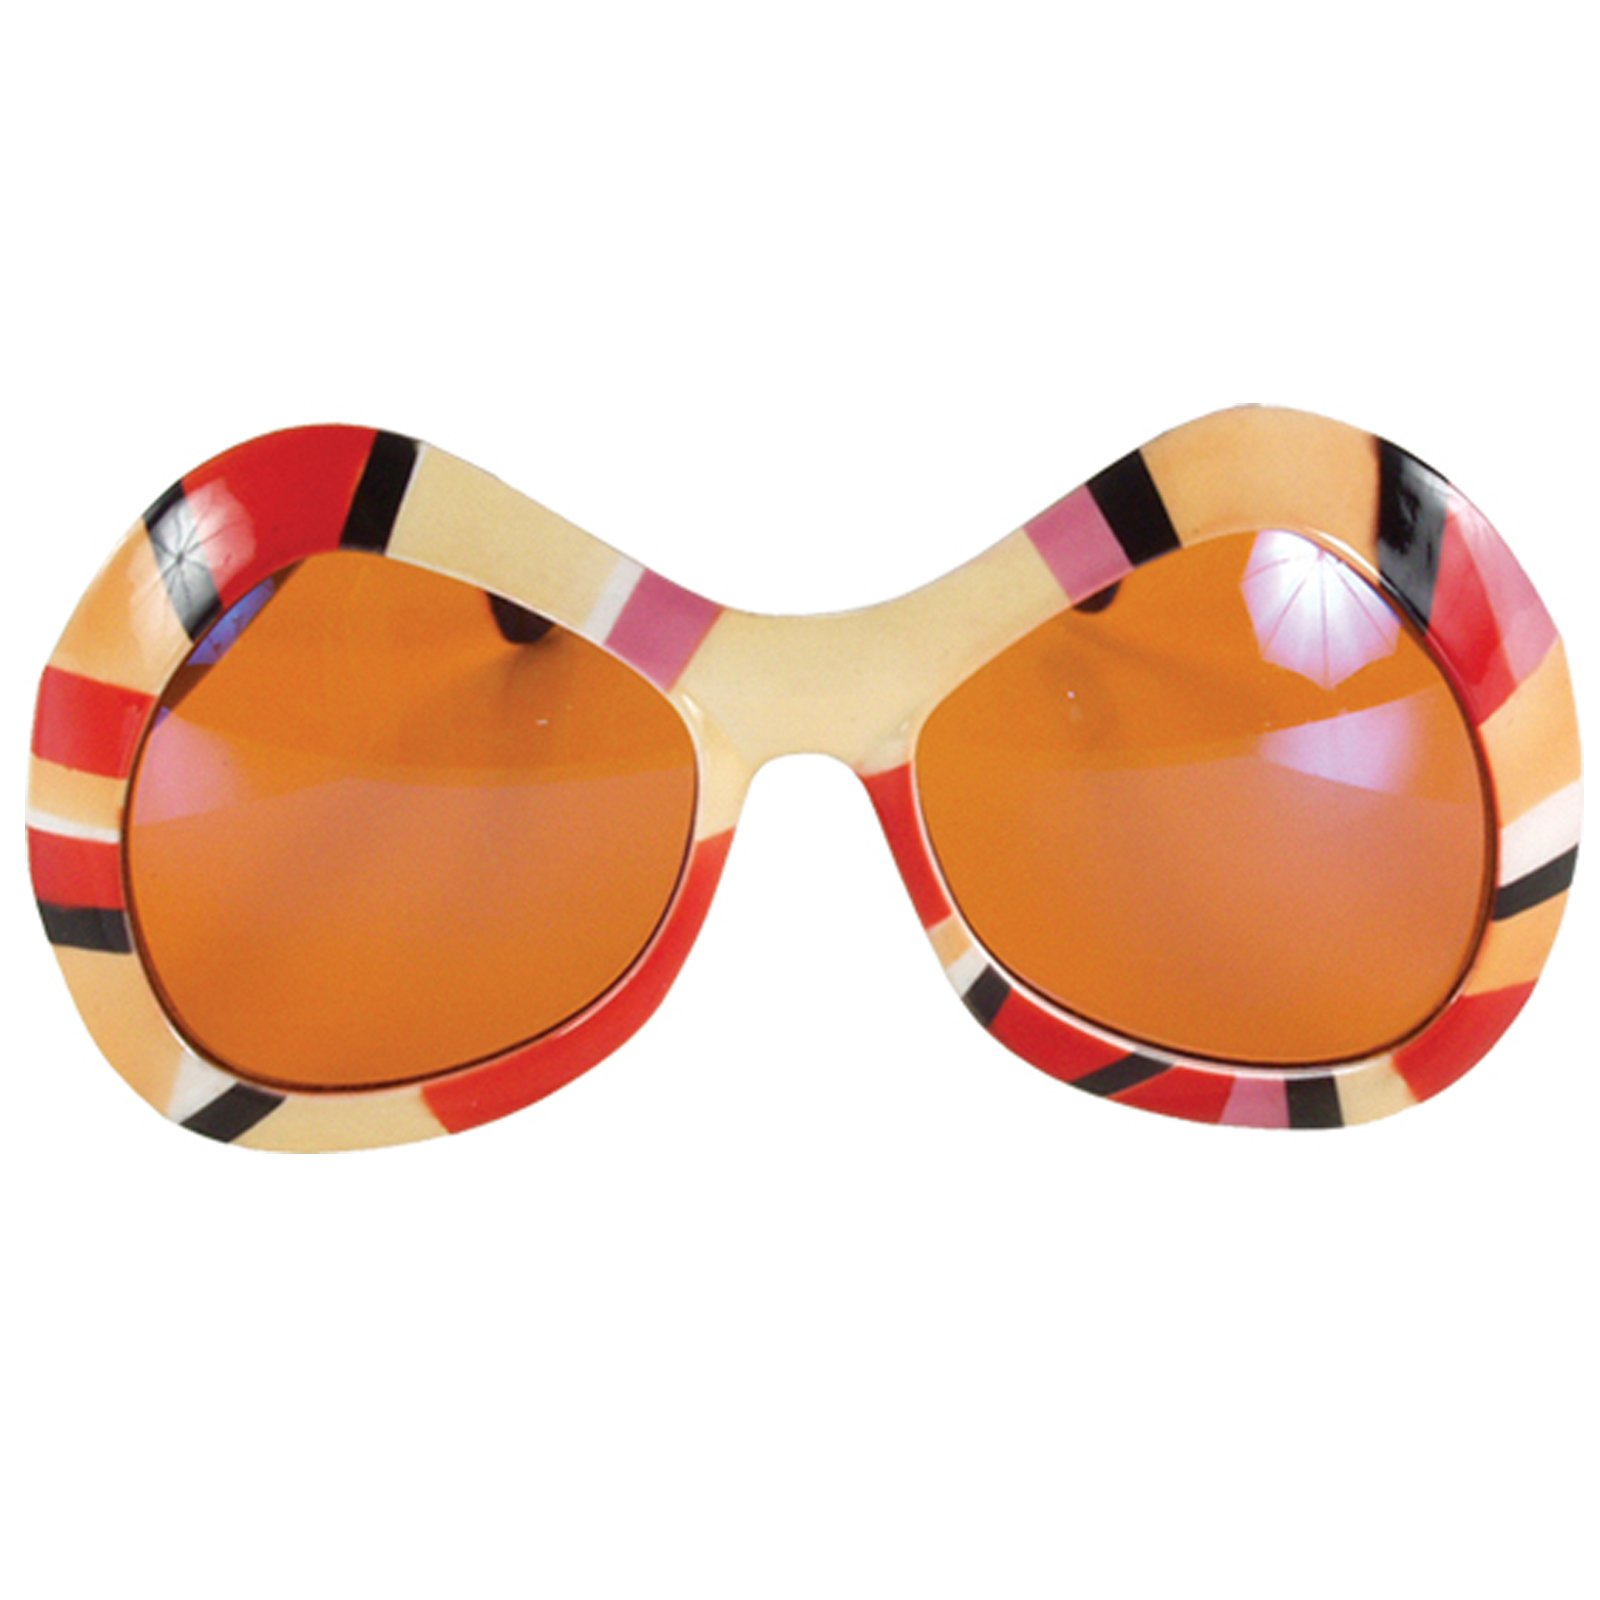 80's Mod Sunglasses - Orange, Pink & Red